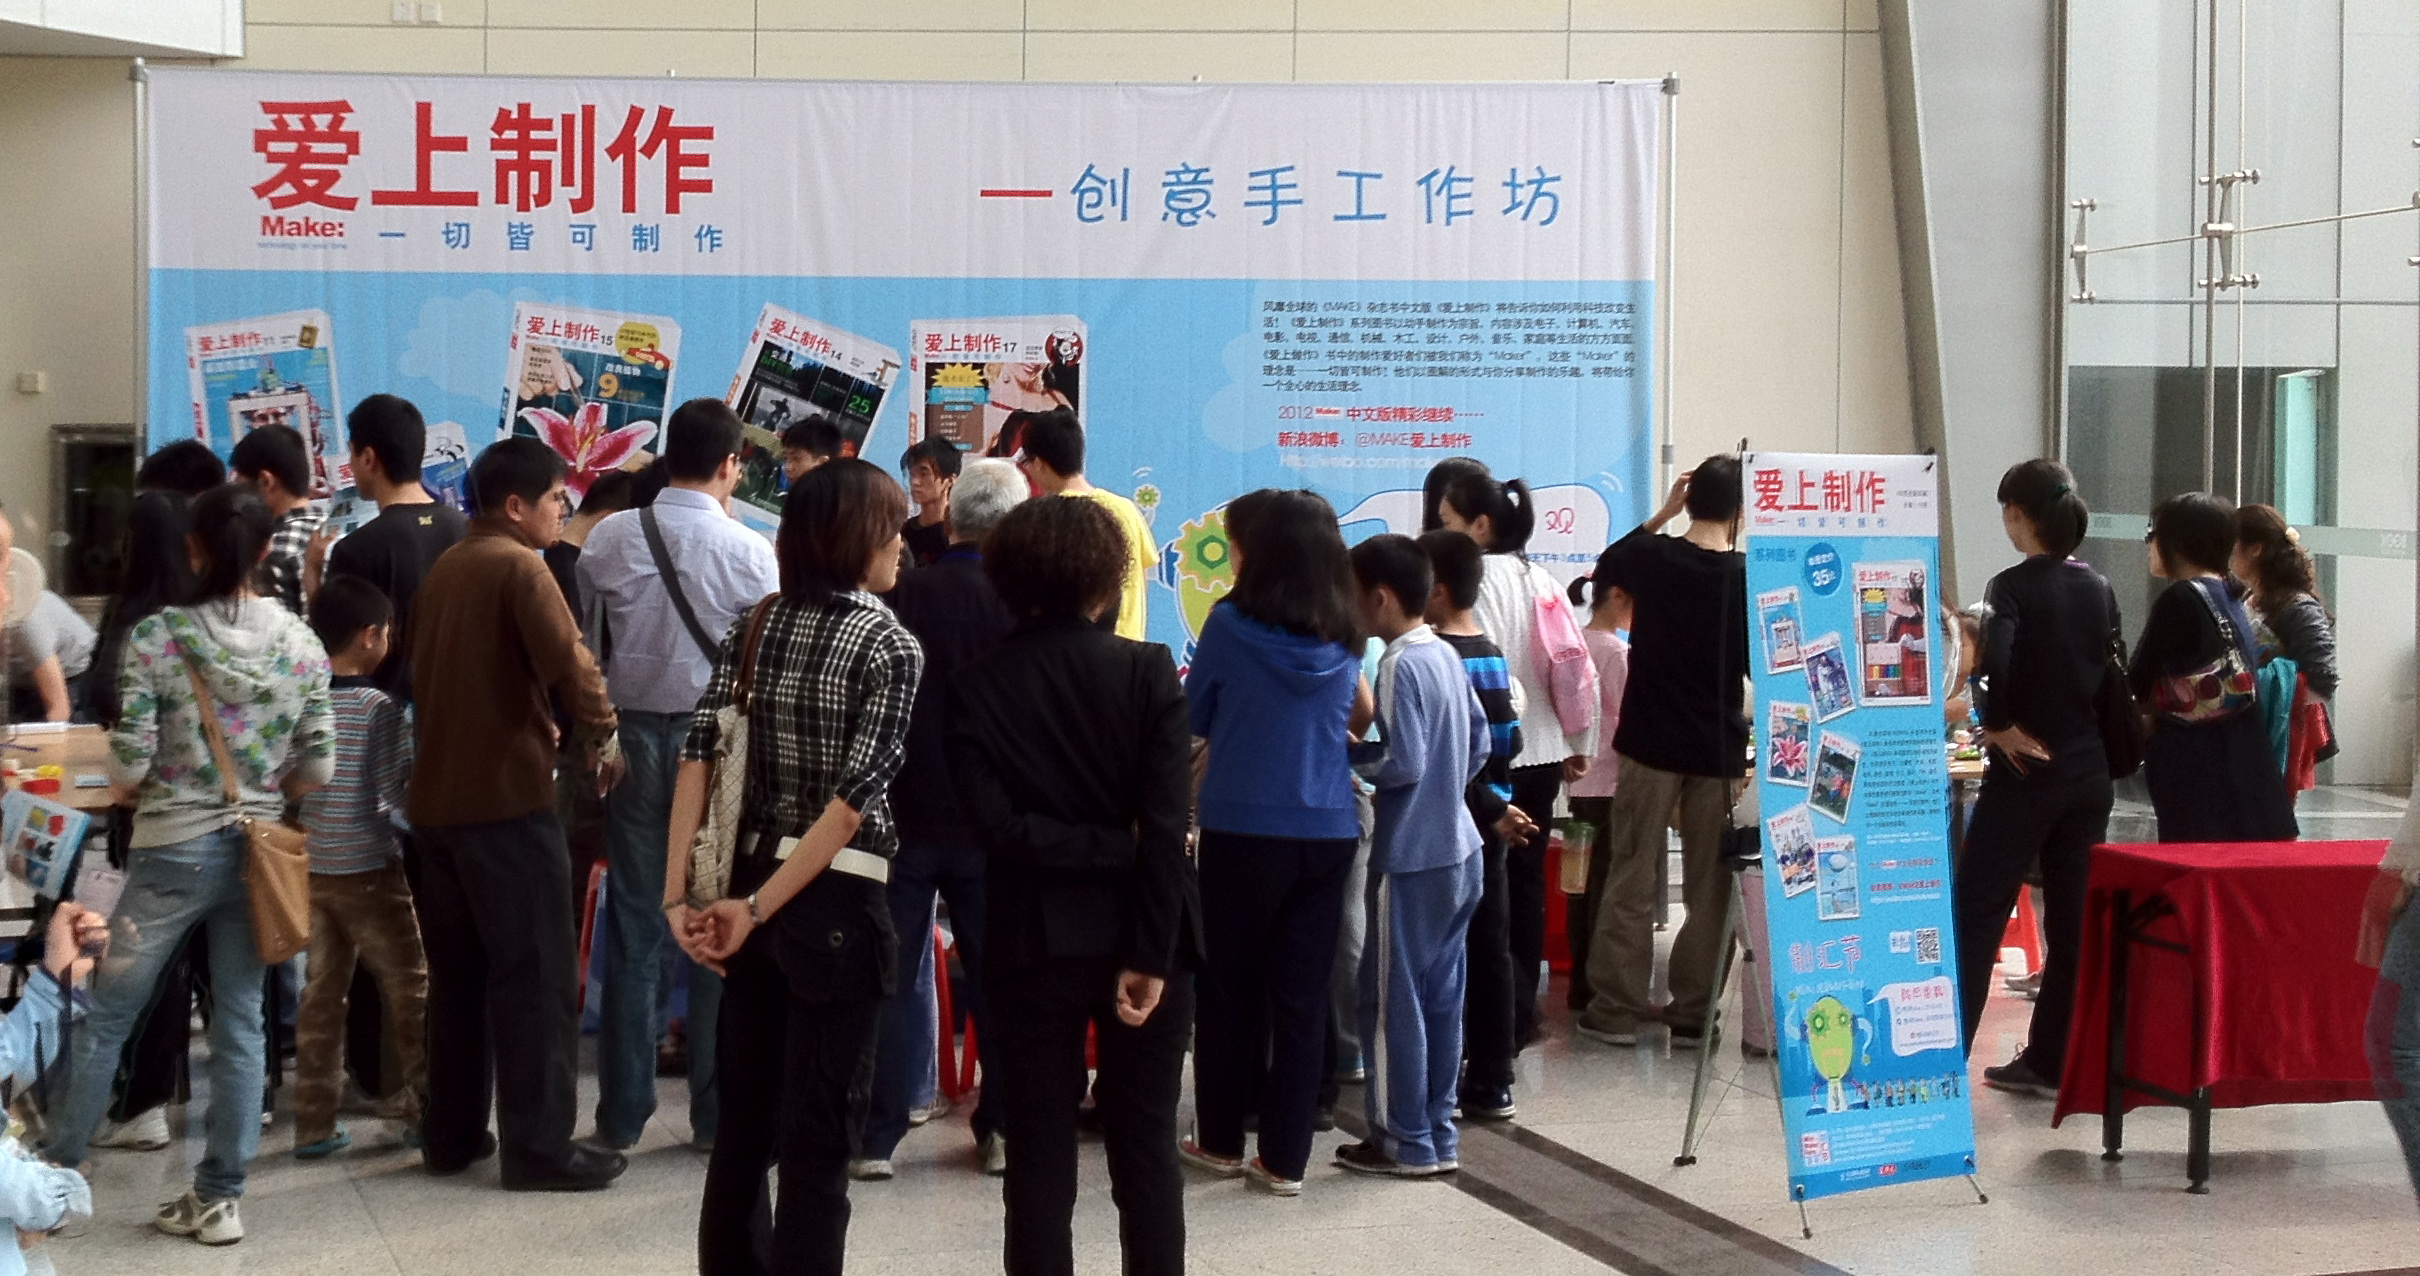 China's First Maker Faire This Sunday in Shenzhen